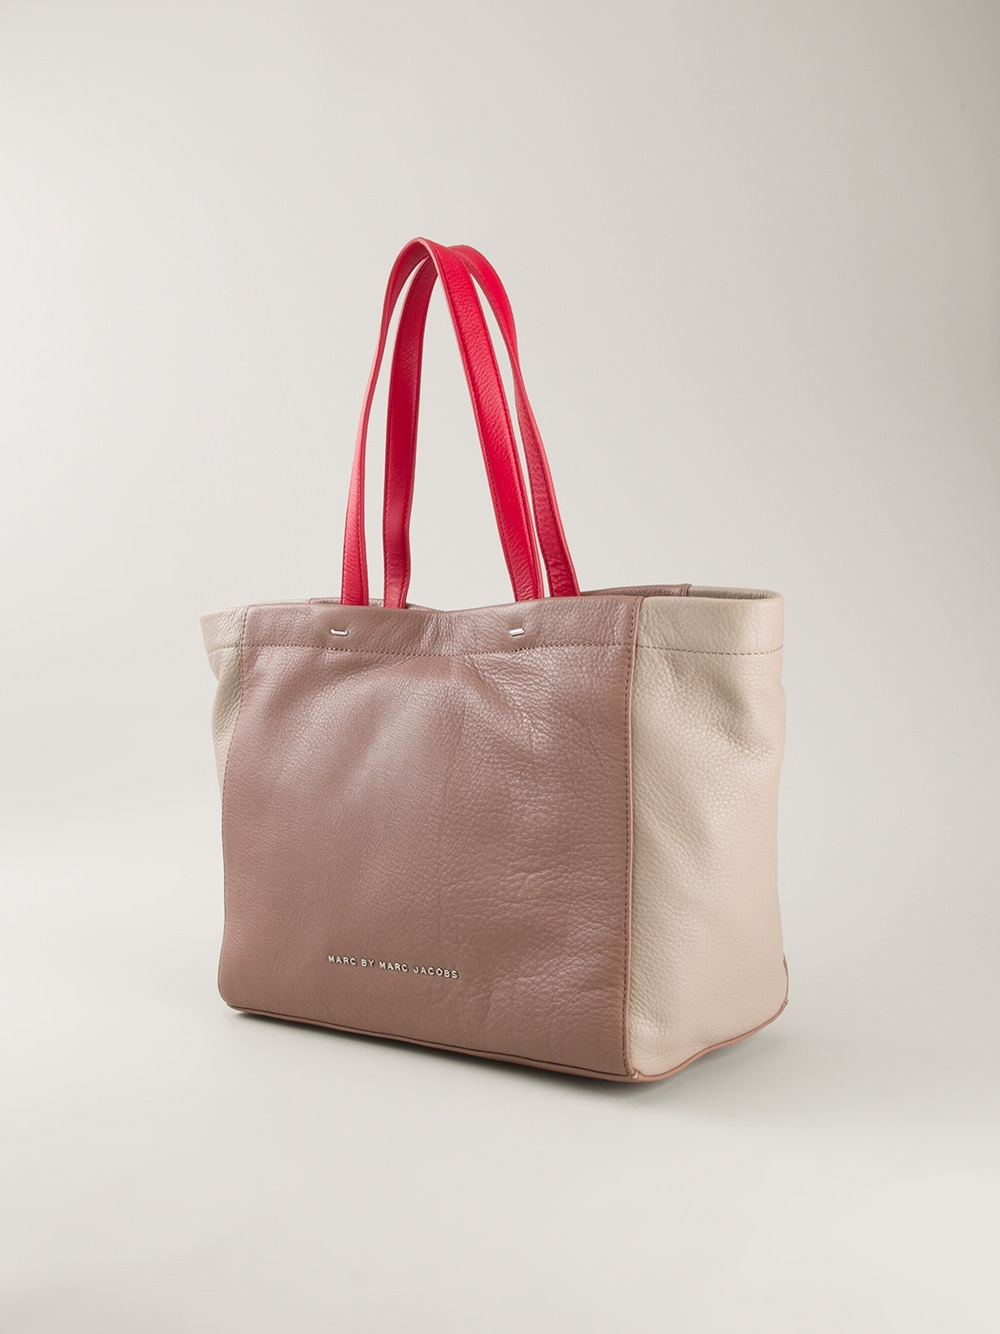 Marc by marc jacobs Whats The T Tote Bag in Pink | Lyst